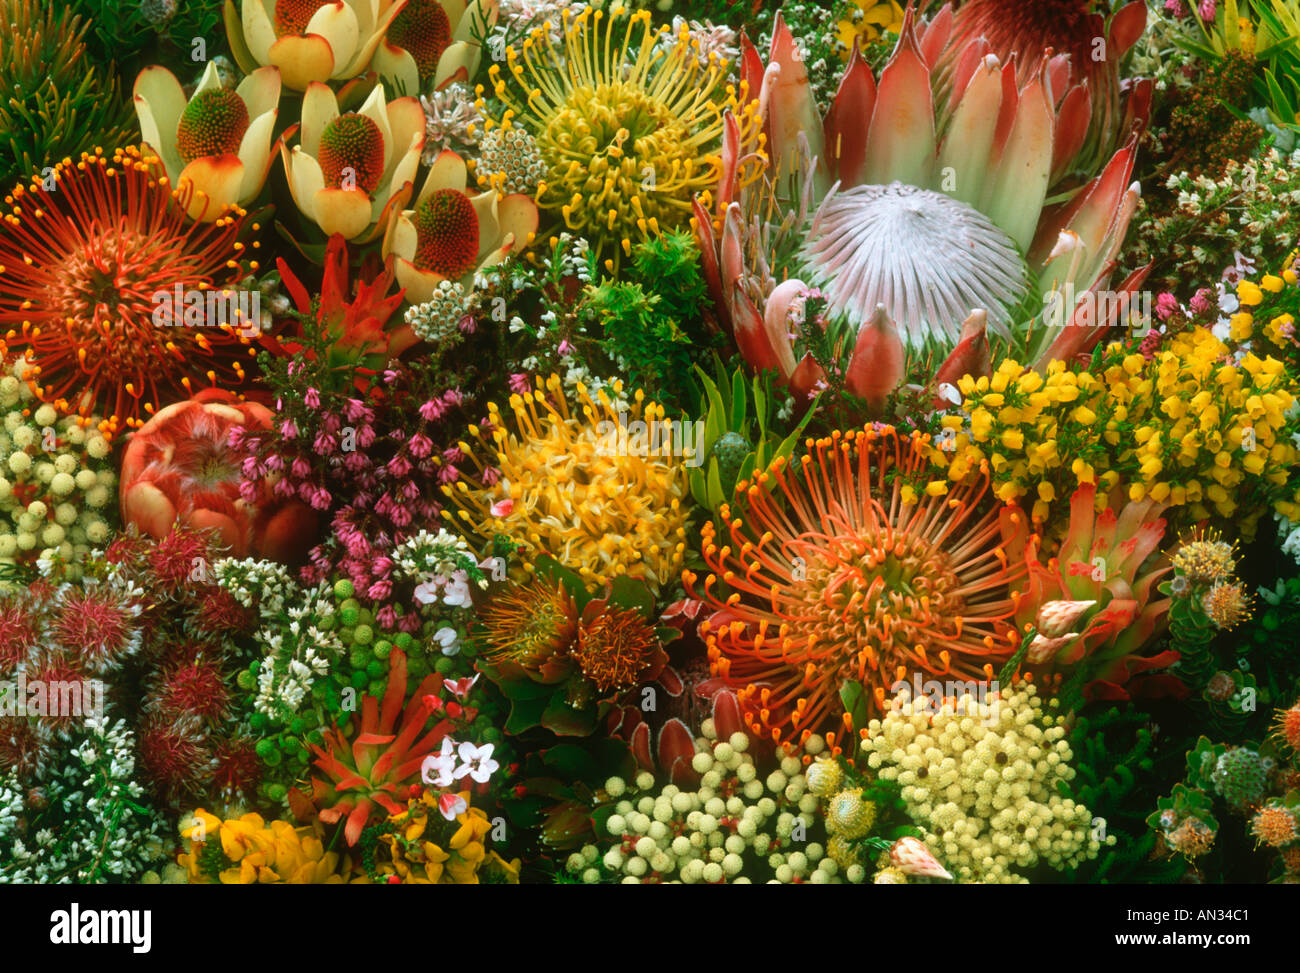 Proteas and pincushions Fynbos species Cape floral kingdom South Africa - Stock Image